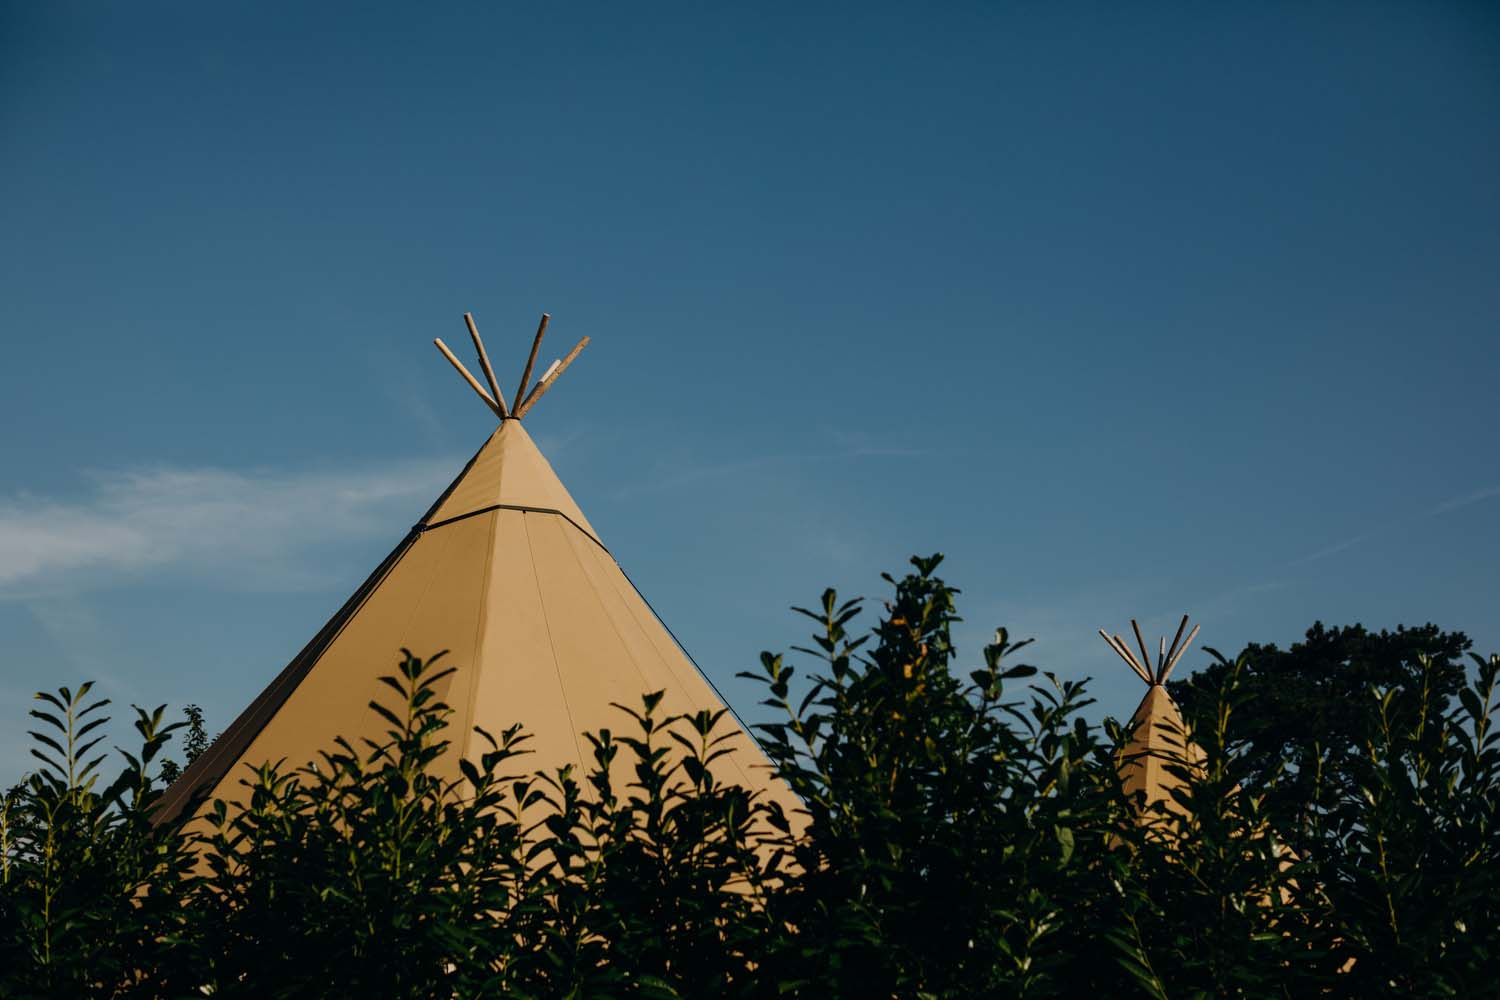 Tipi poking out to sky